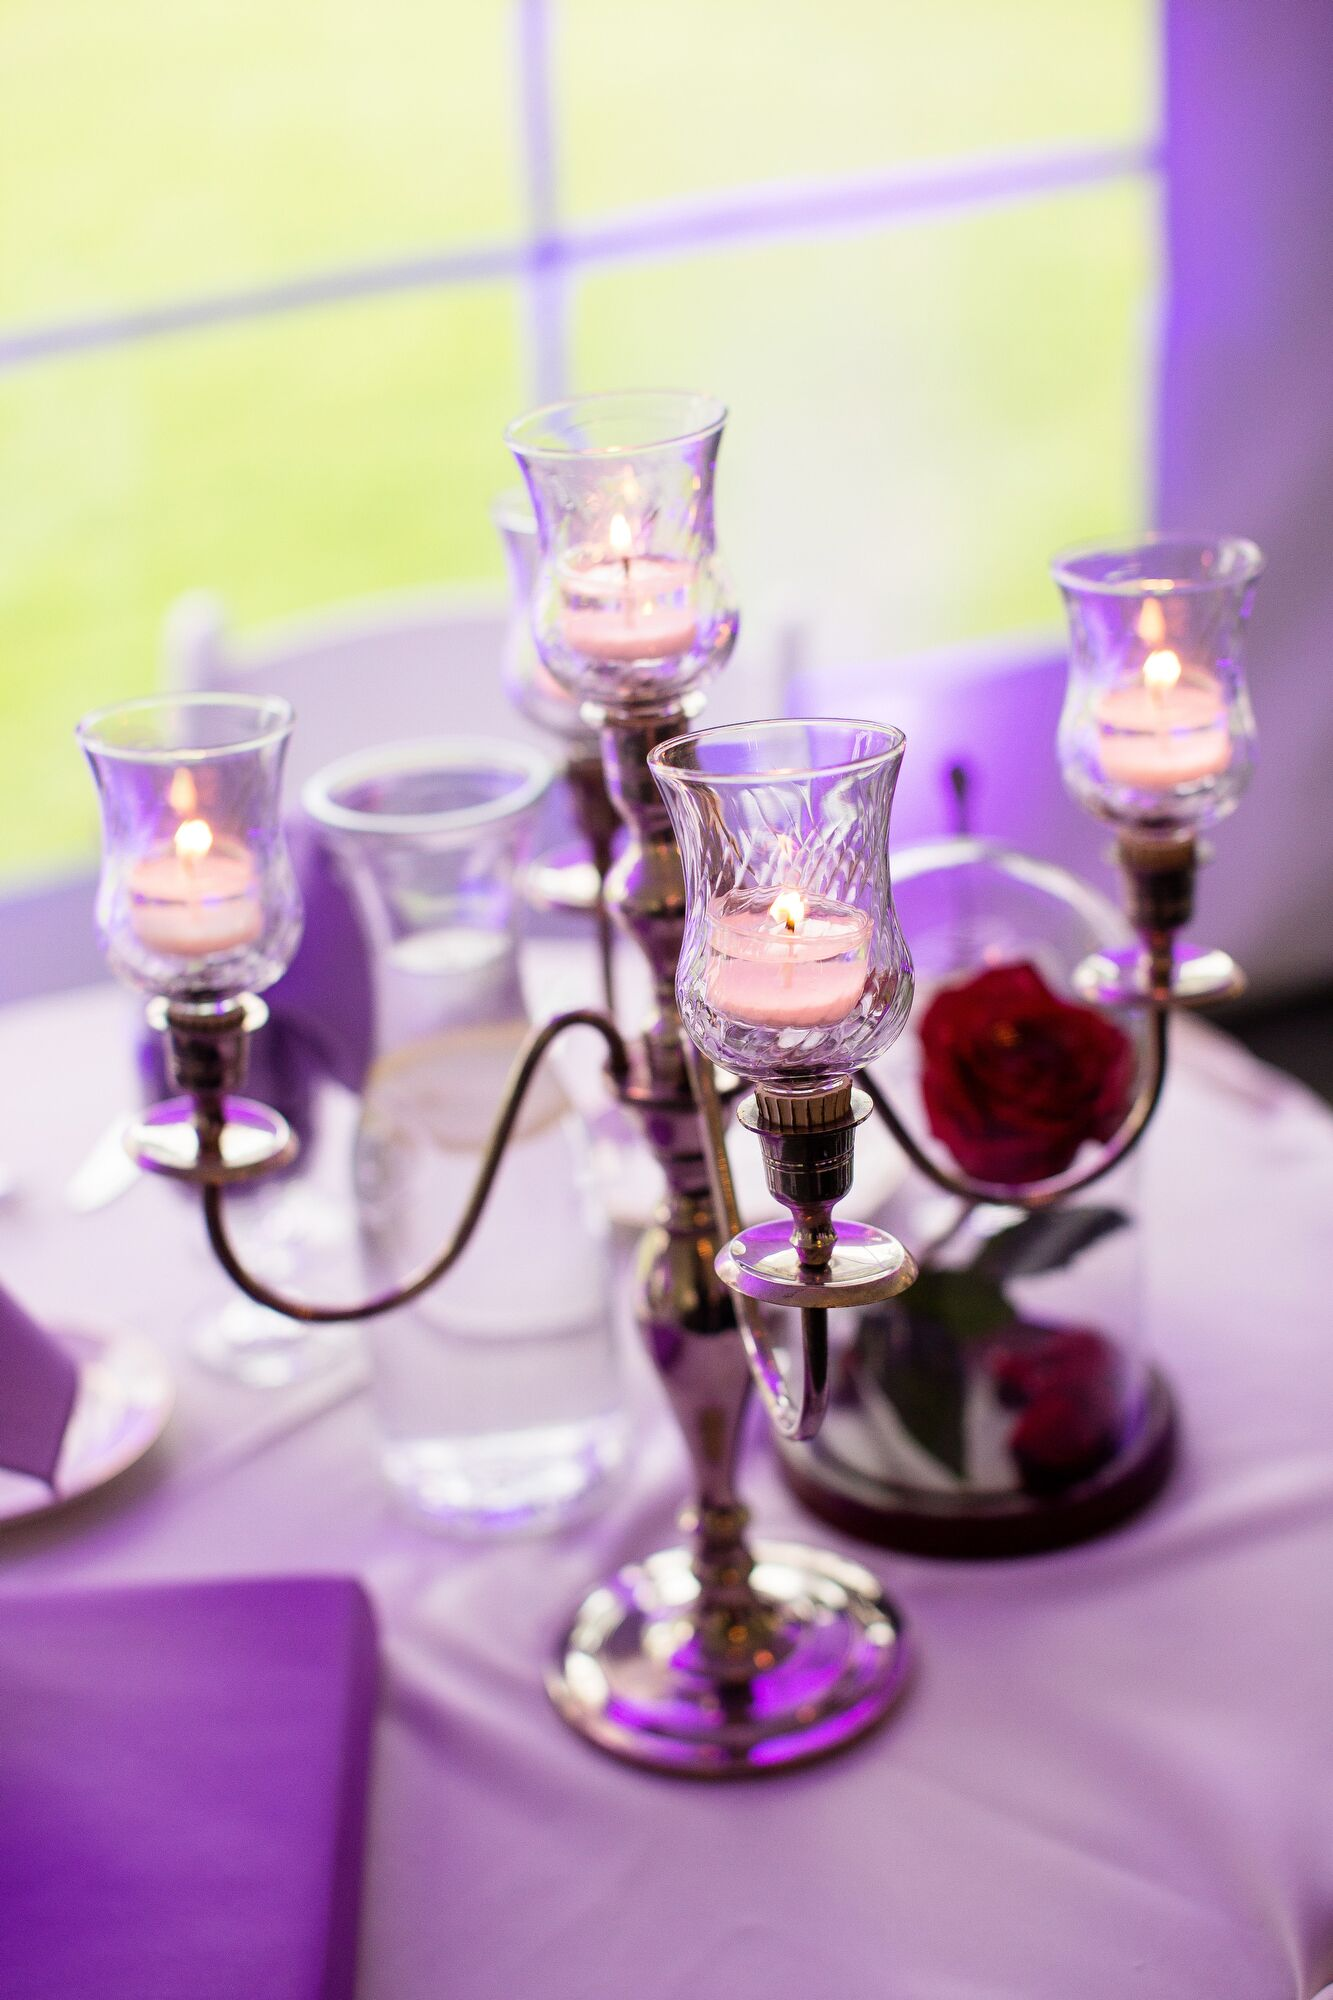 Beauty-and-the-Beast-Inspired Candelabras and Glass-Domed Rose ...